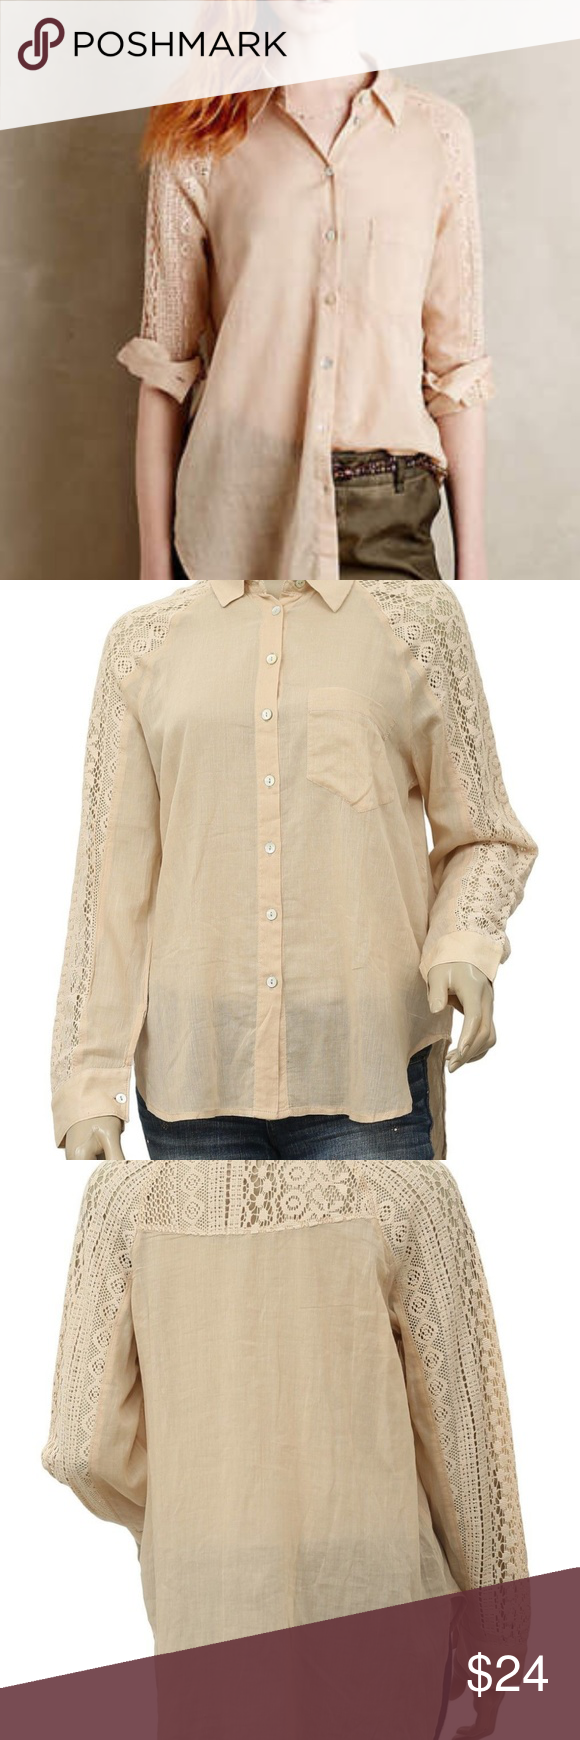 Anthropologie Holding Horses Lace Button Shirt Top My Posh Closet